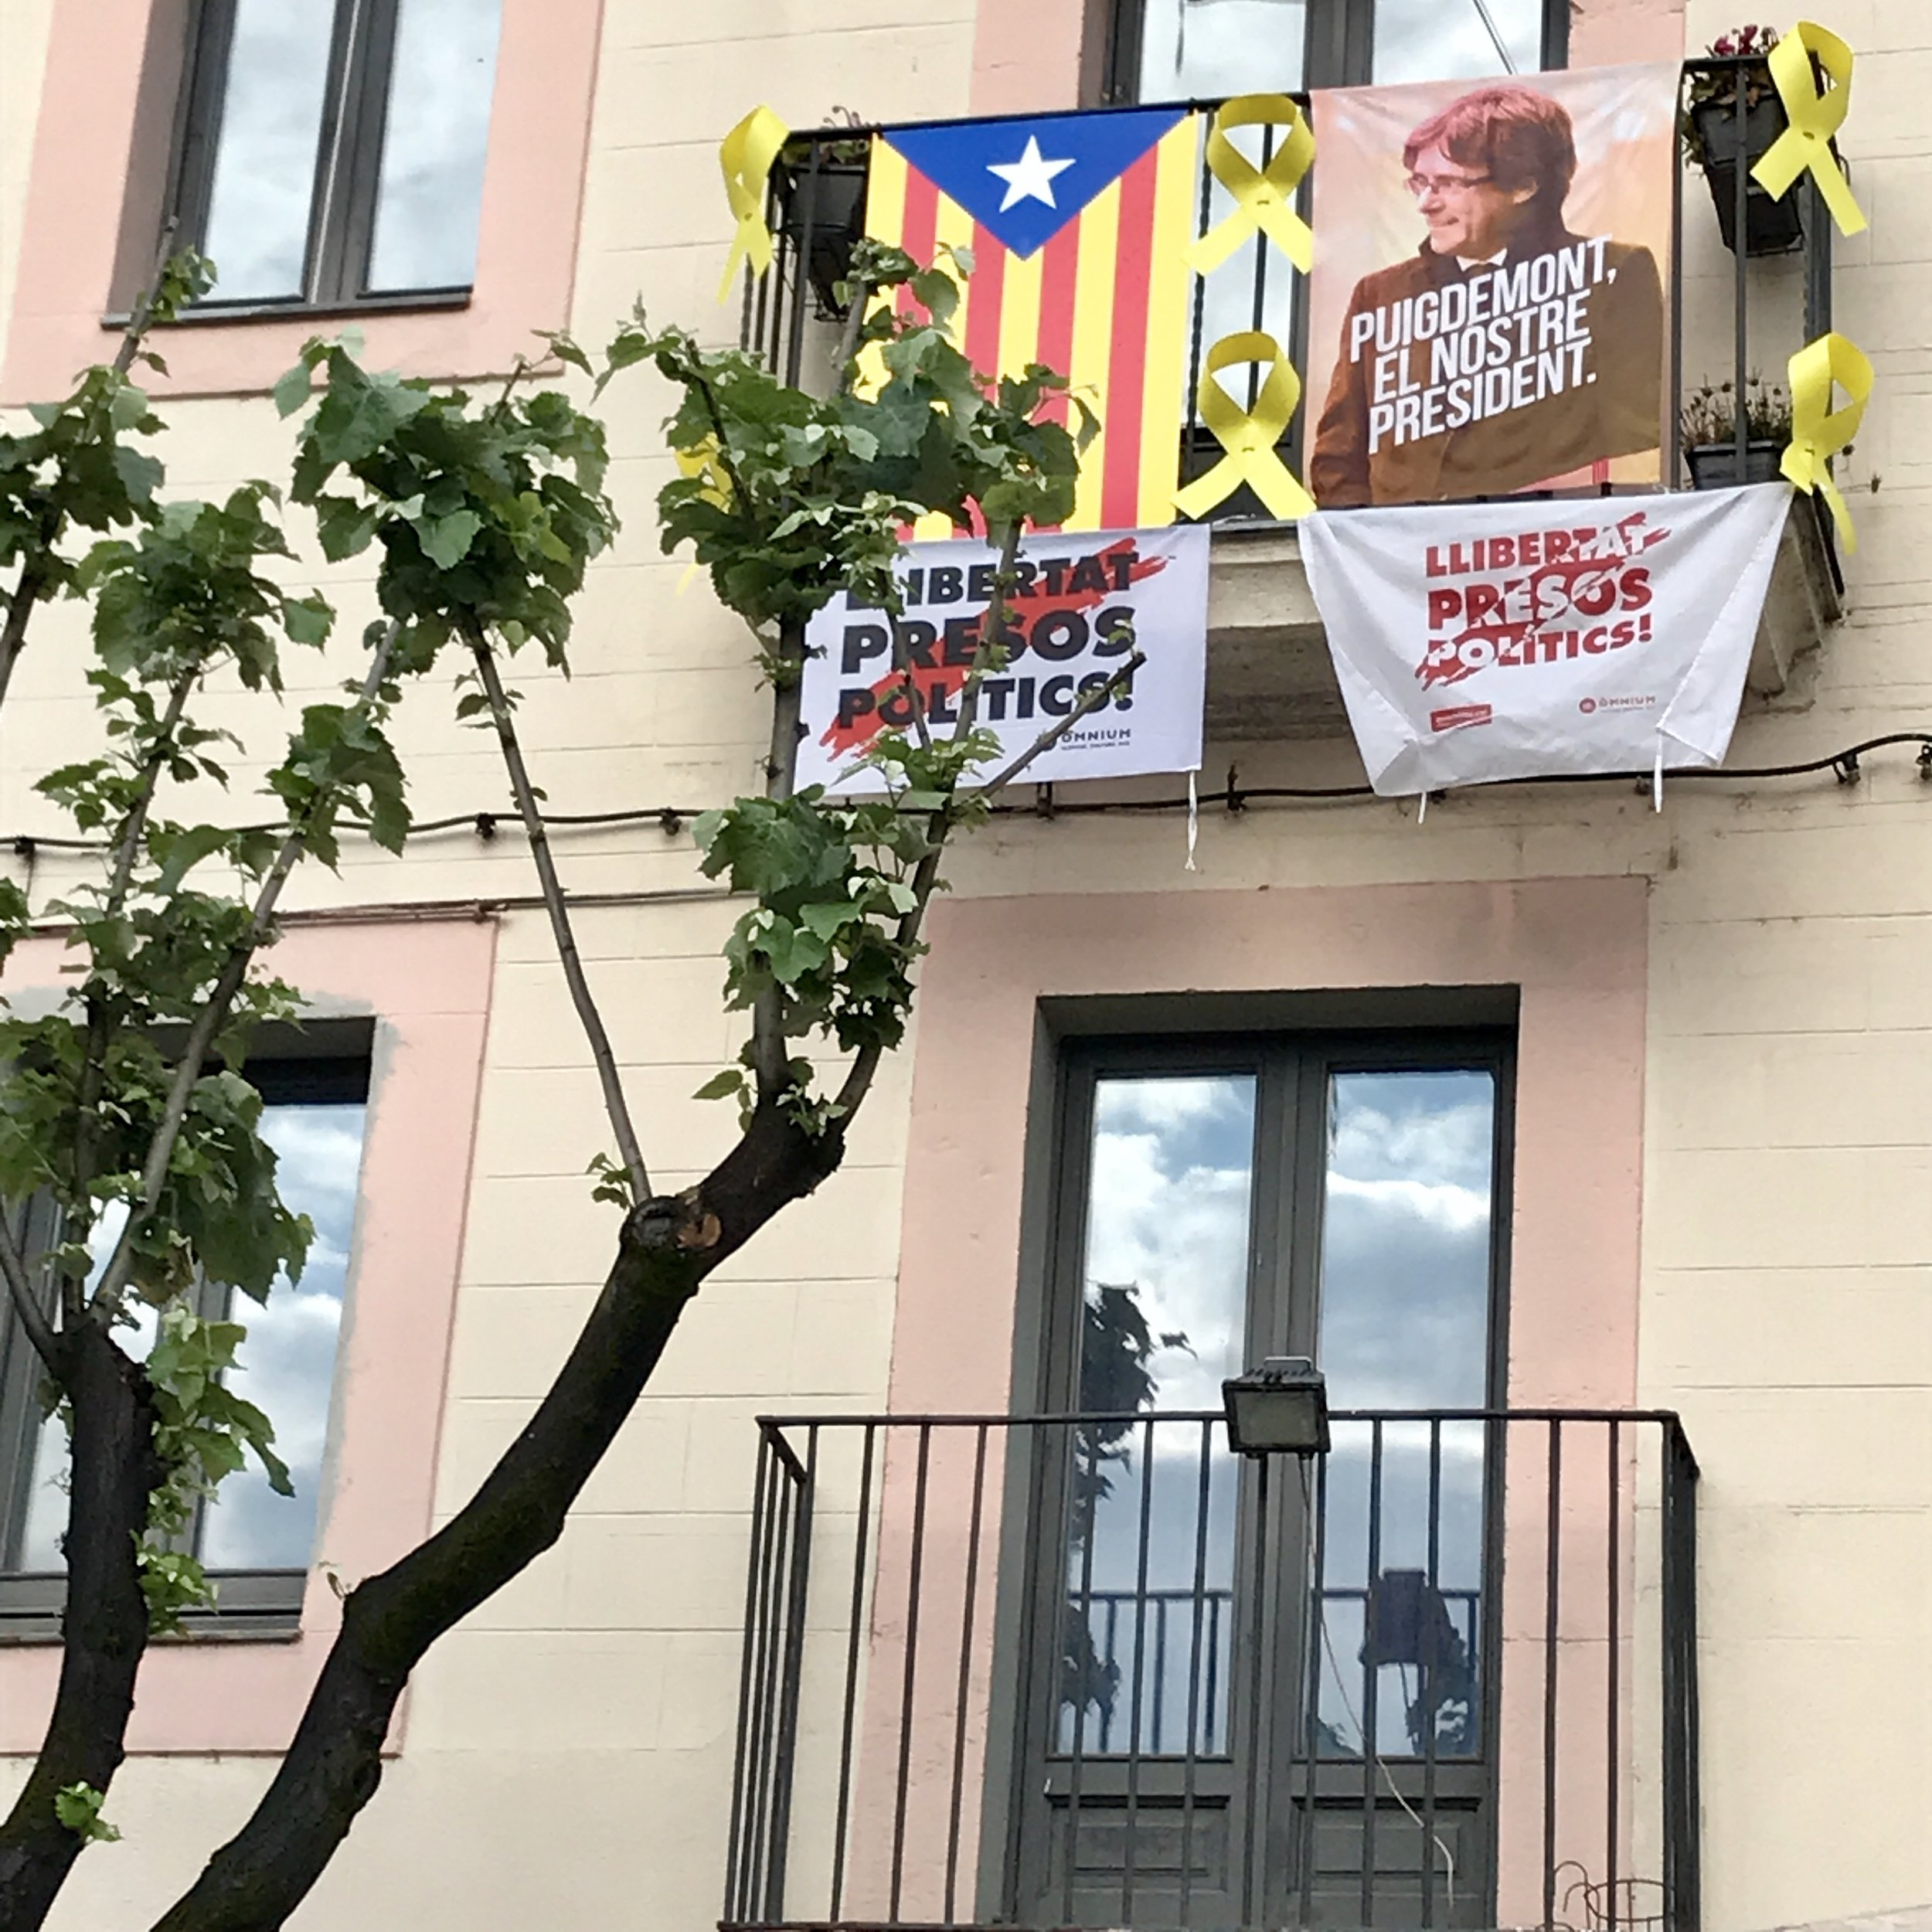 You know that you're in Catalonia when you see the Catalan flags, yellow ribbons, and independence posters.